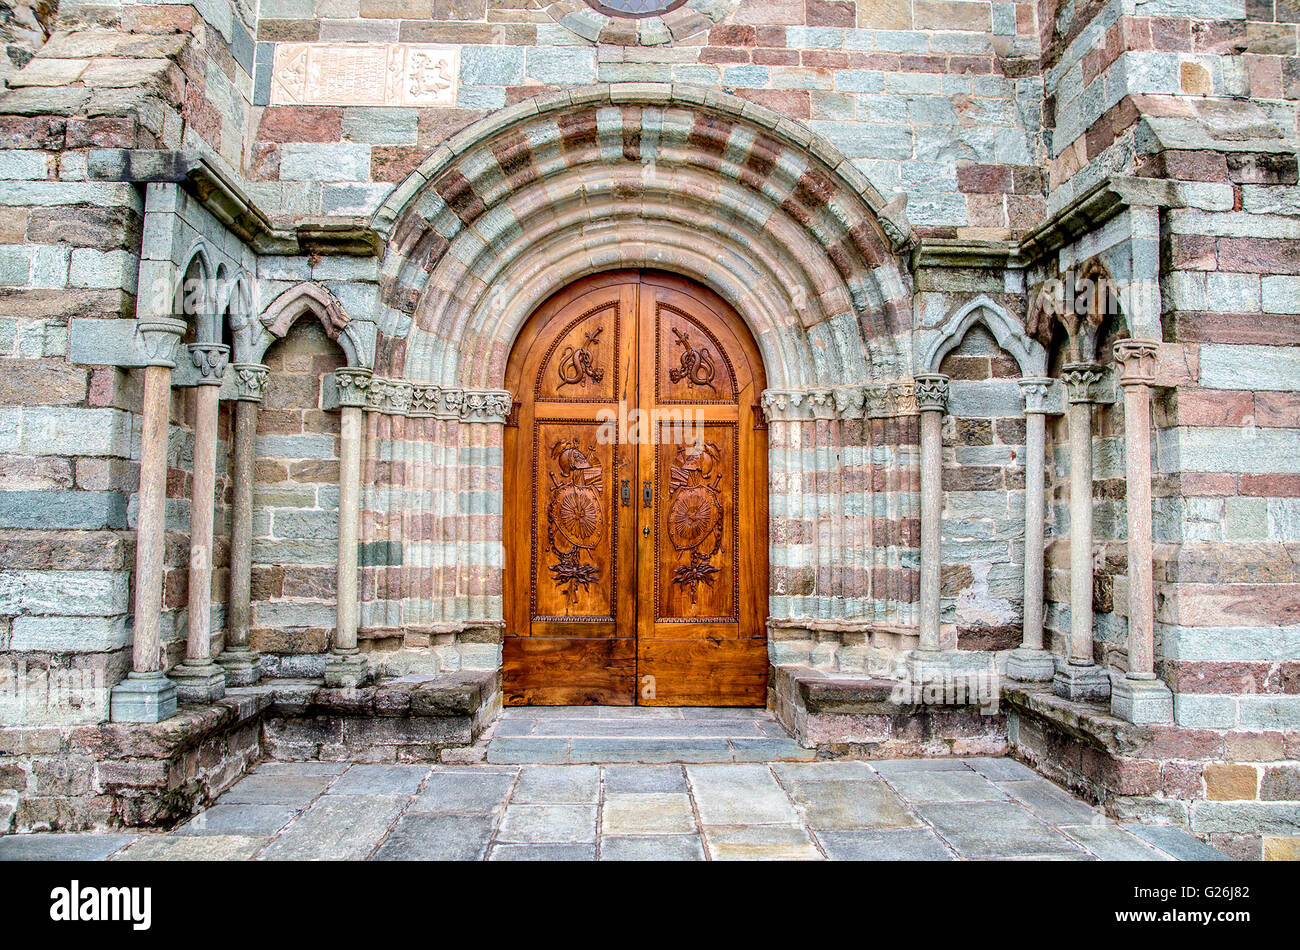 carved wood door at the entrance of the Sacra of Saint Michael church. - Stock Image